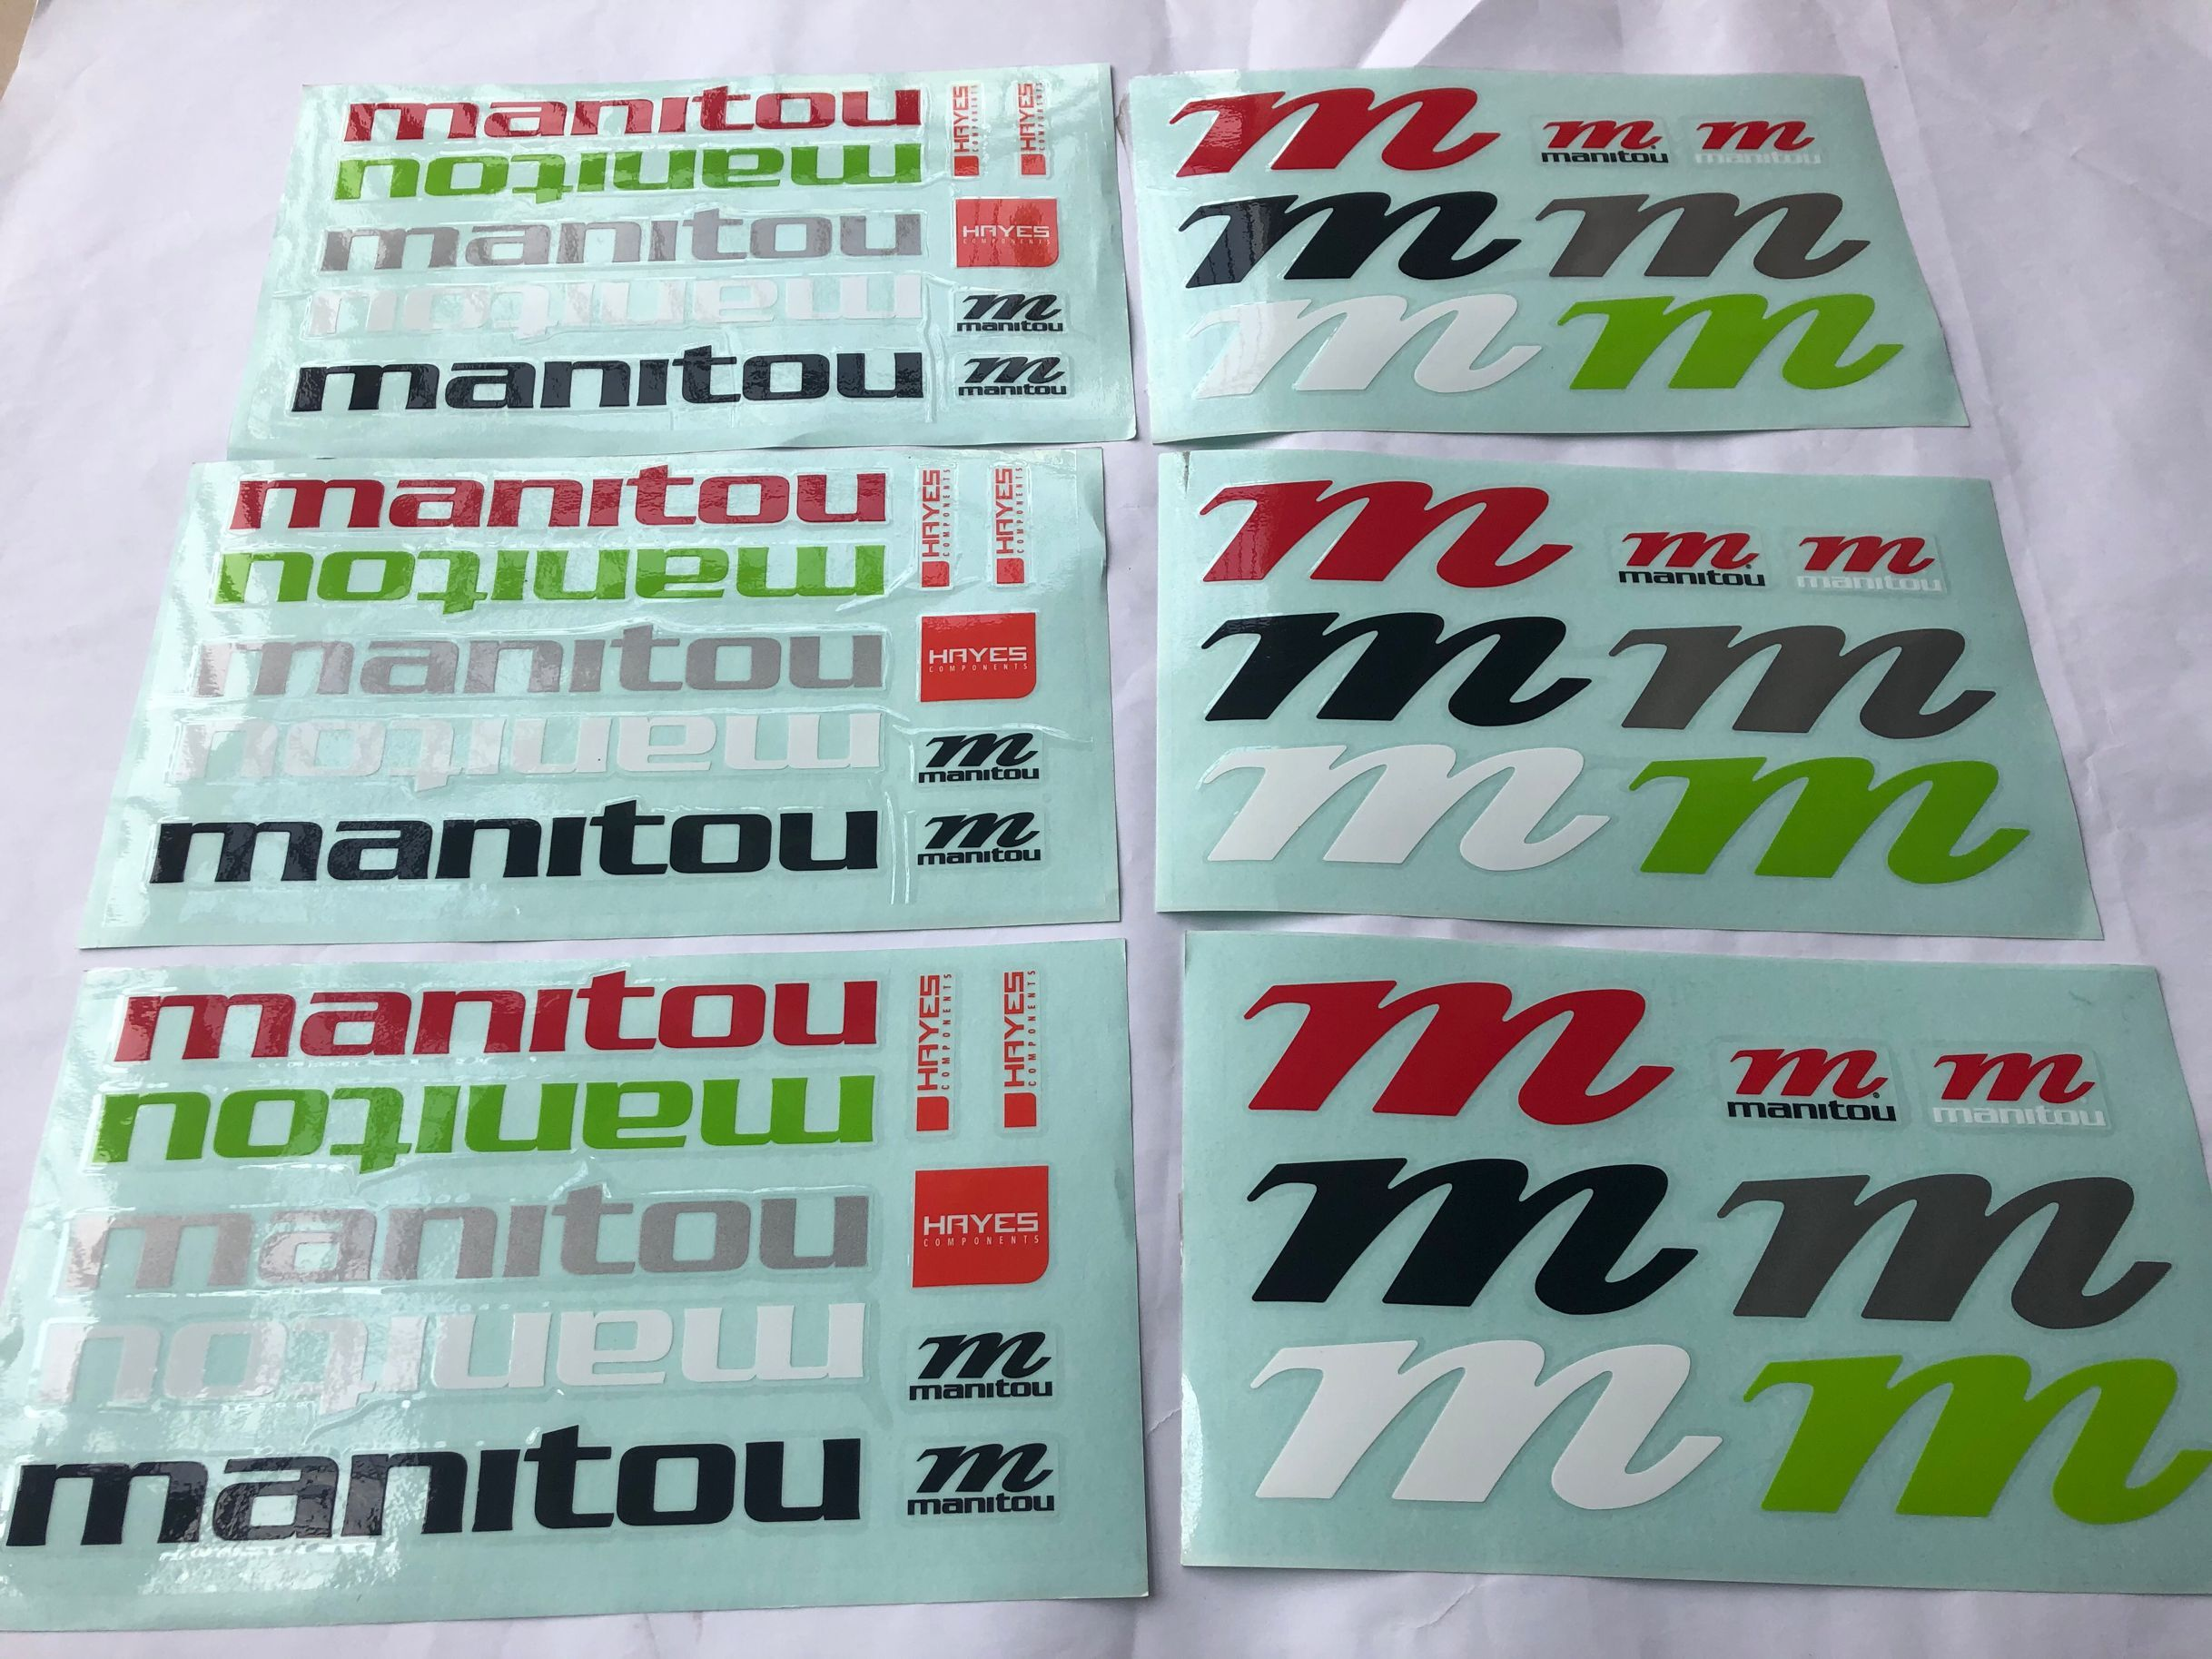 2020 manitou <font><b>mountain</b></font> <font><b>bike</b></font> fork stickers MTB latest front fork sticker decals image